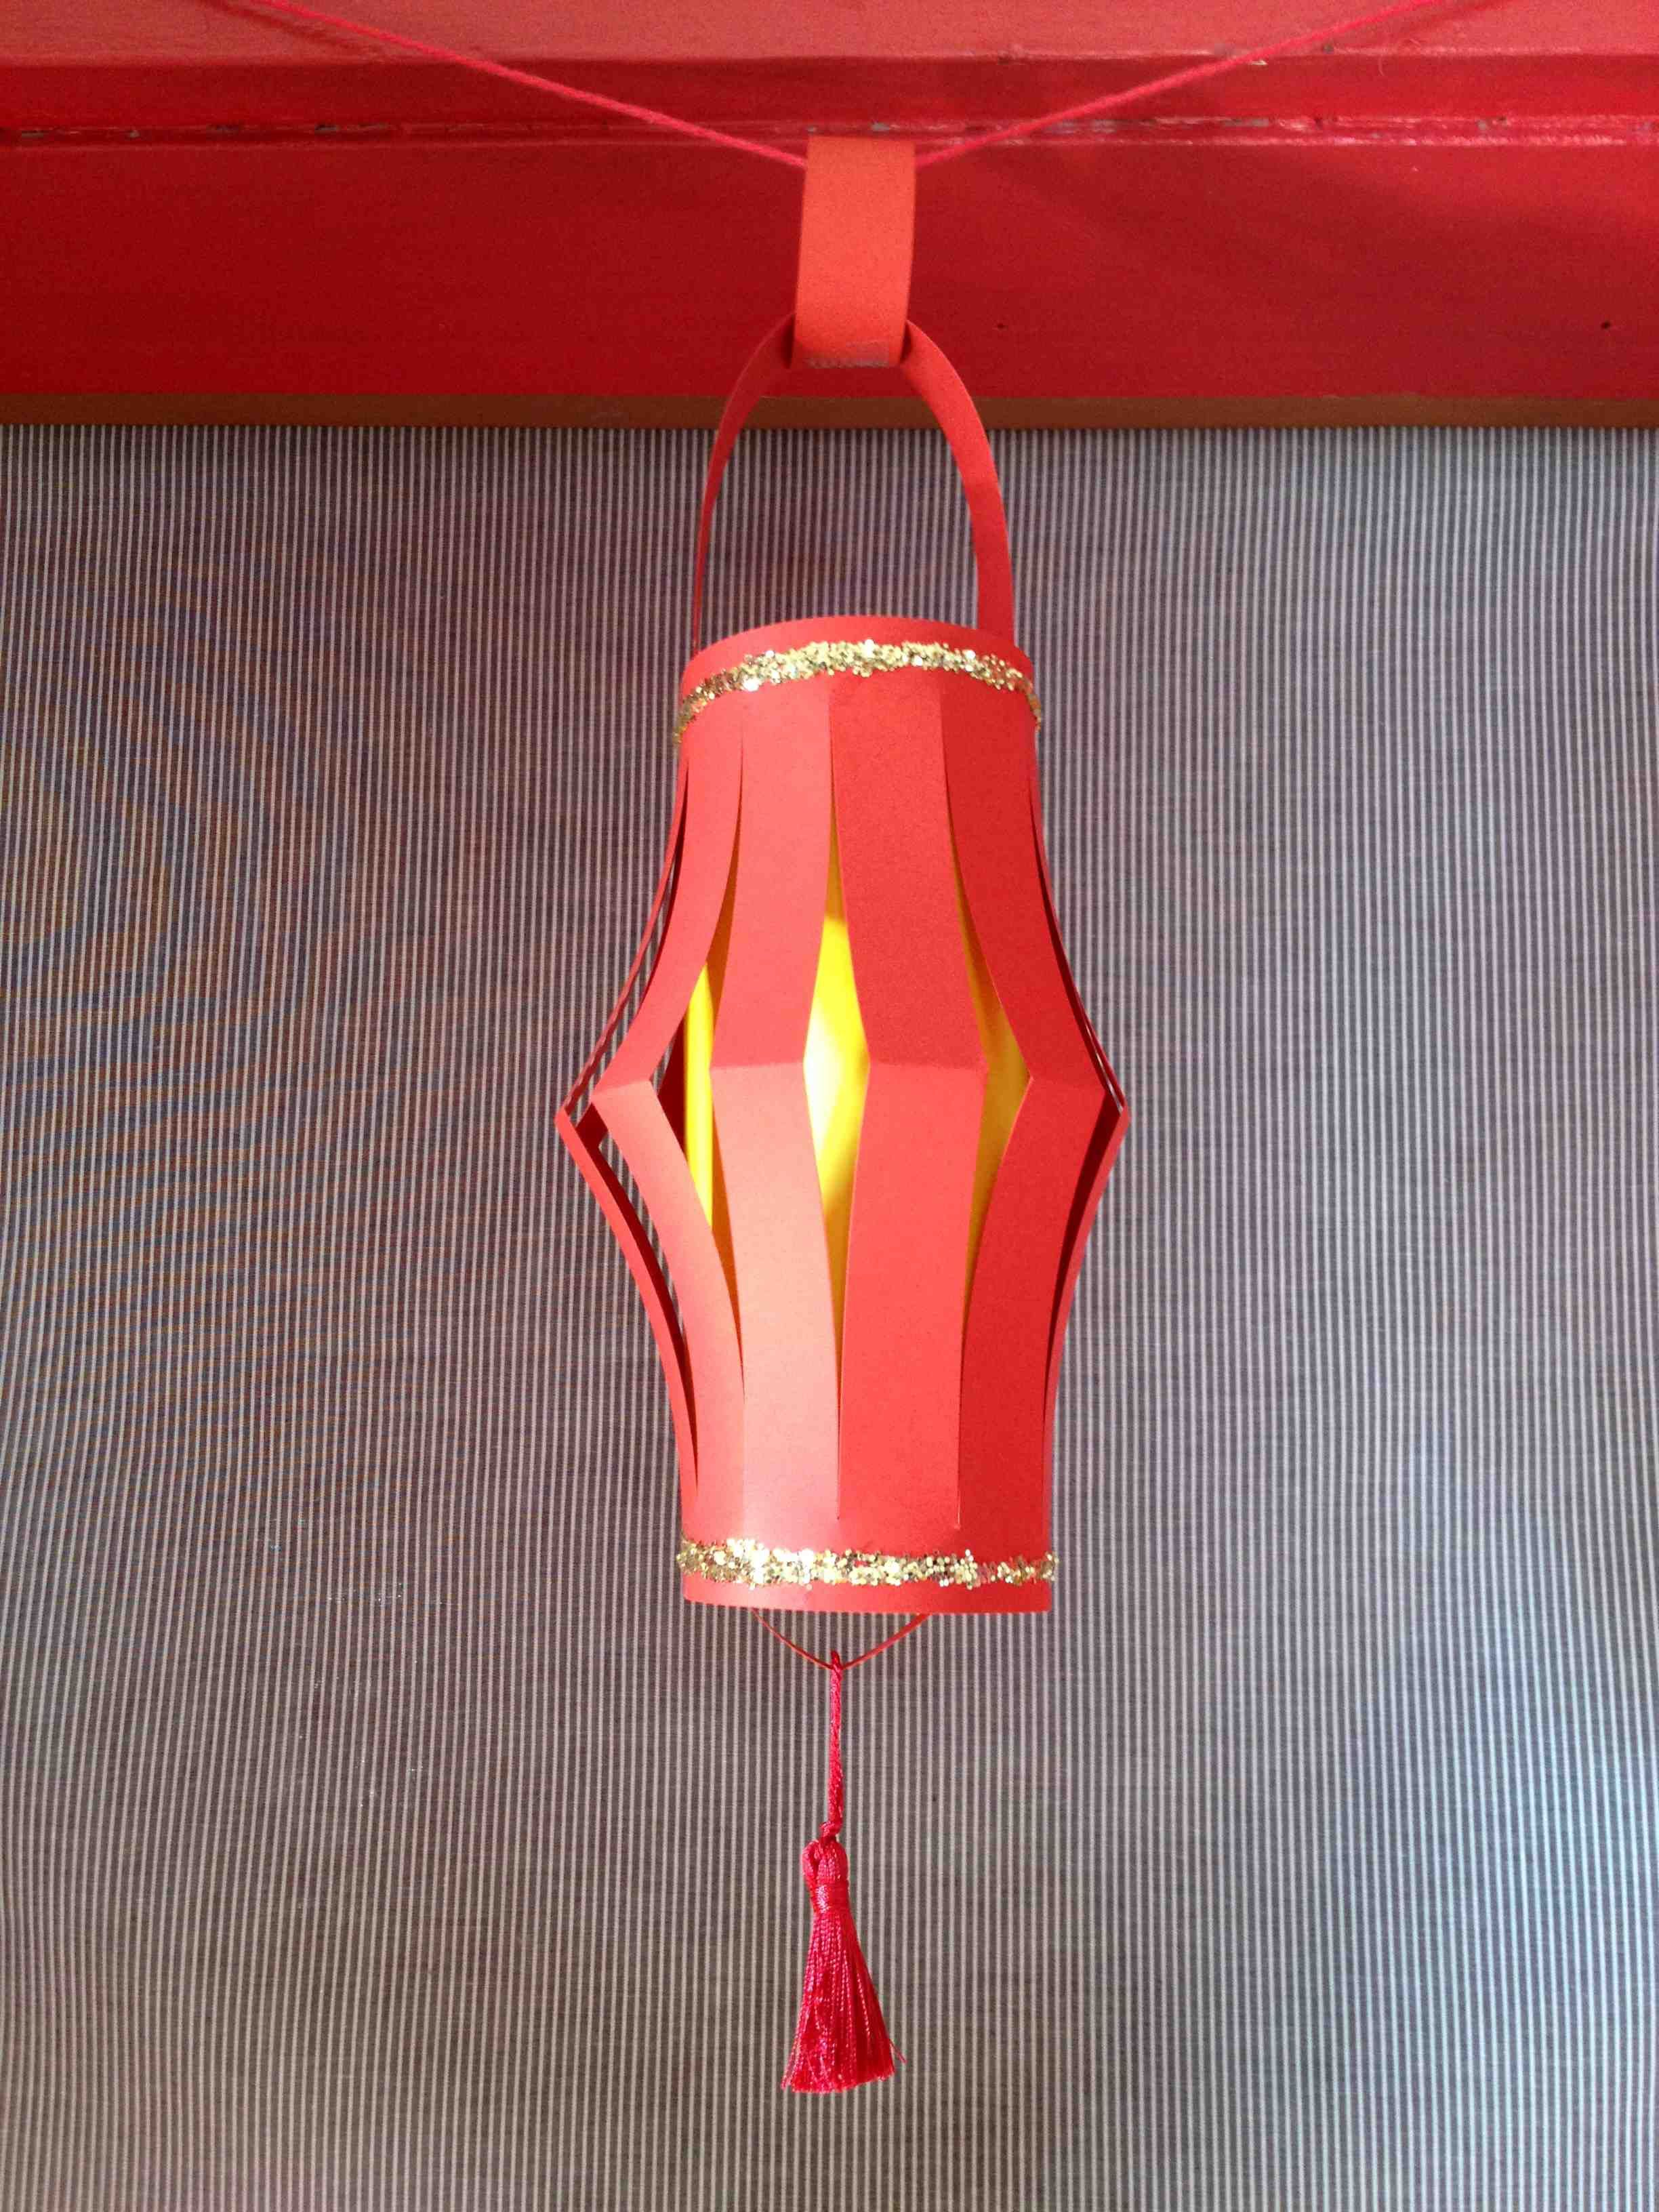 Celebrating The Chinese New Year With A Paper Lantern Craft For Kids